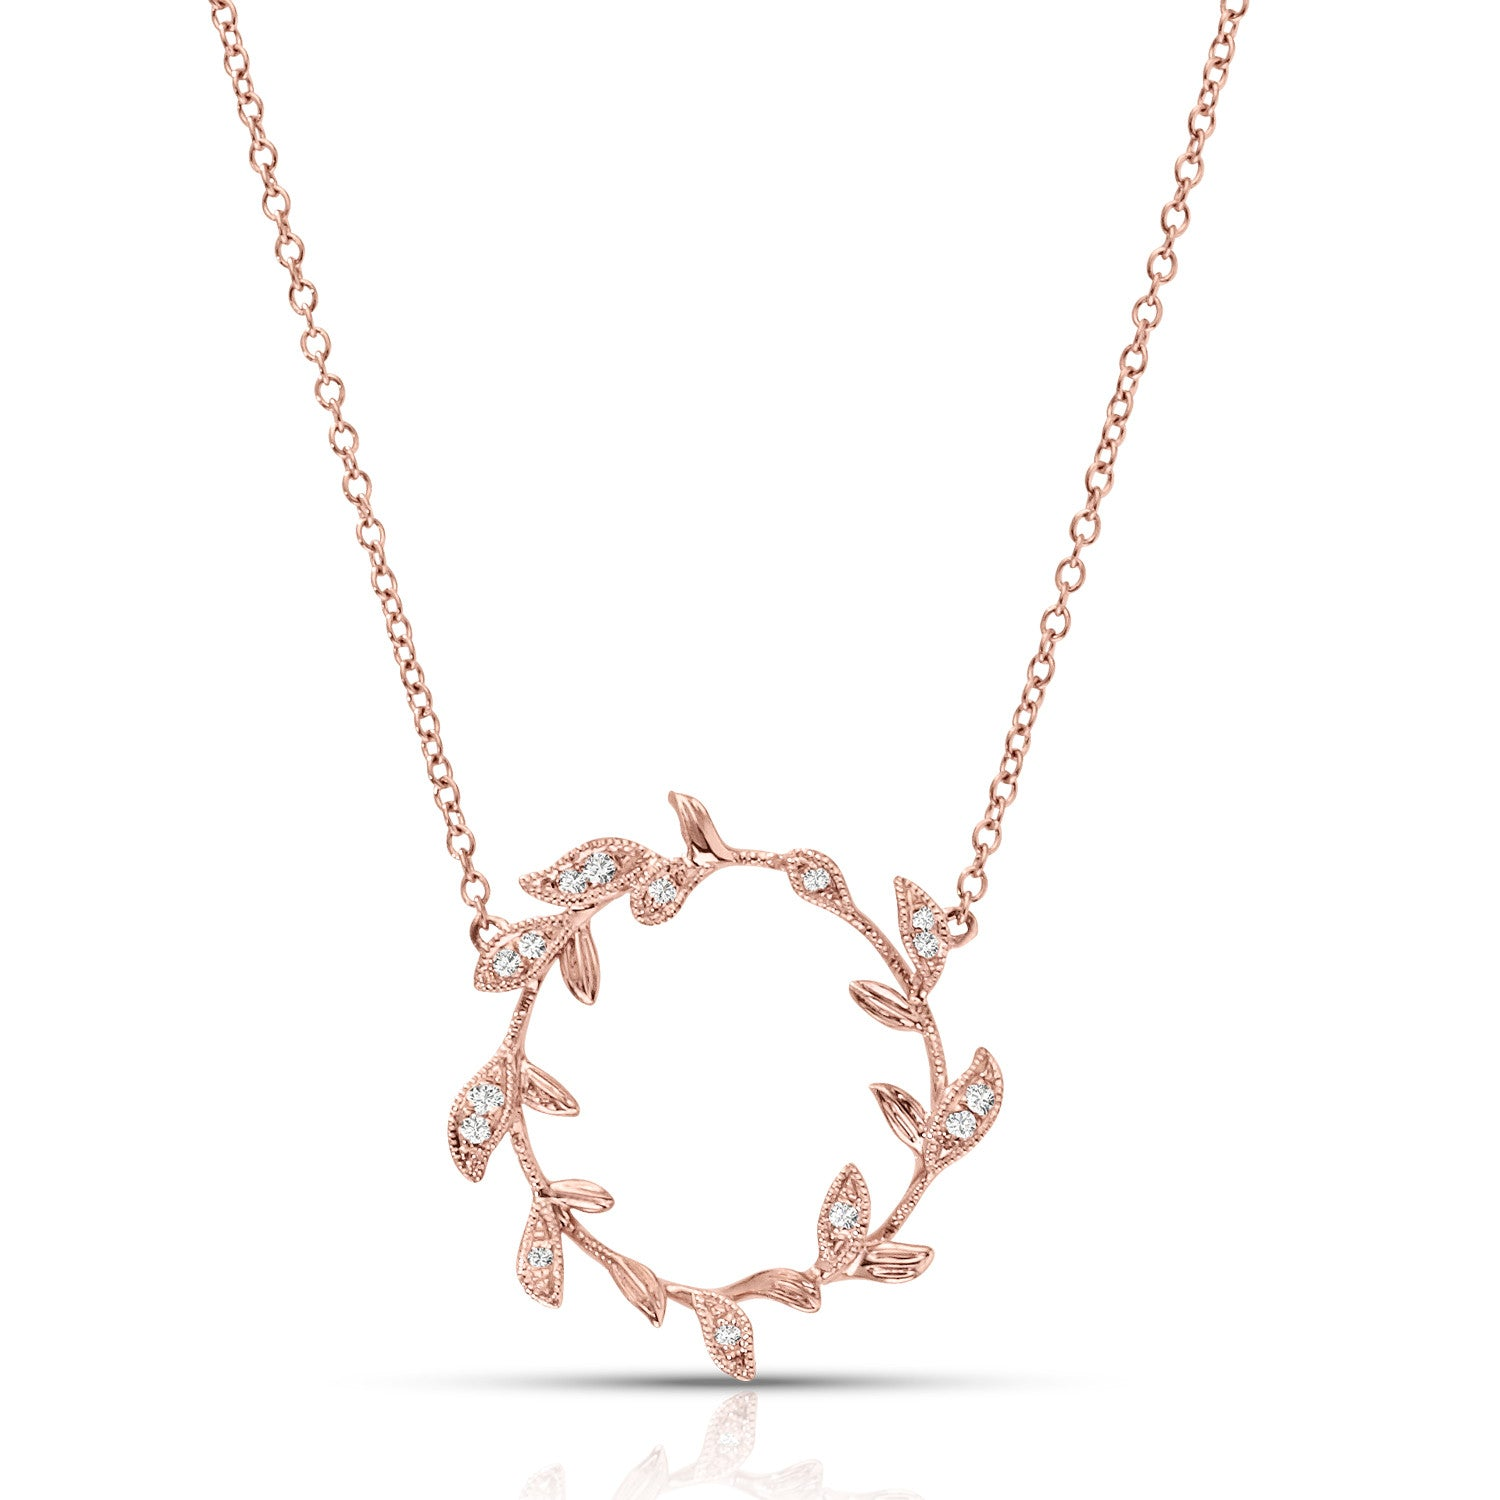 14K Couture Rose Gold Diamond Wreath Necklace - Crestwood Jewelers